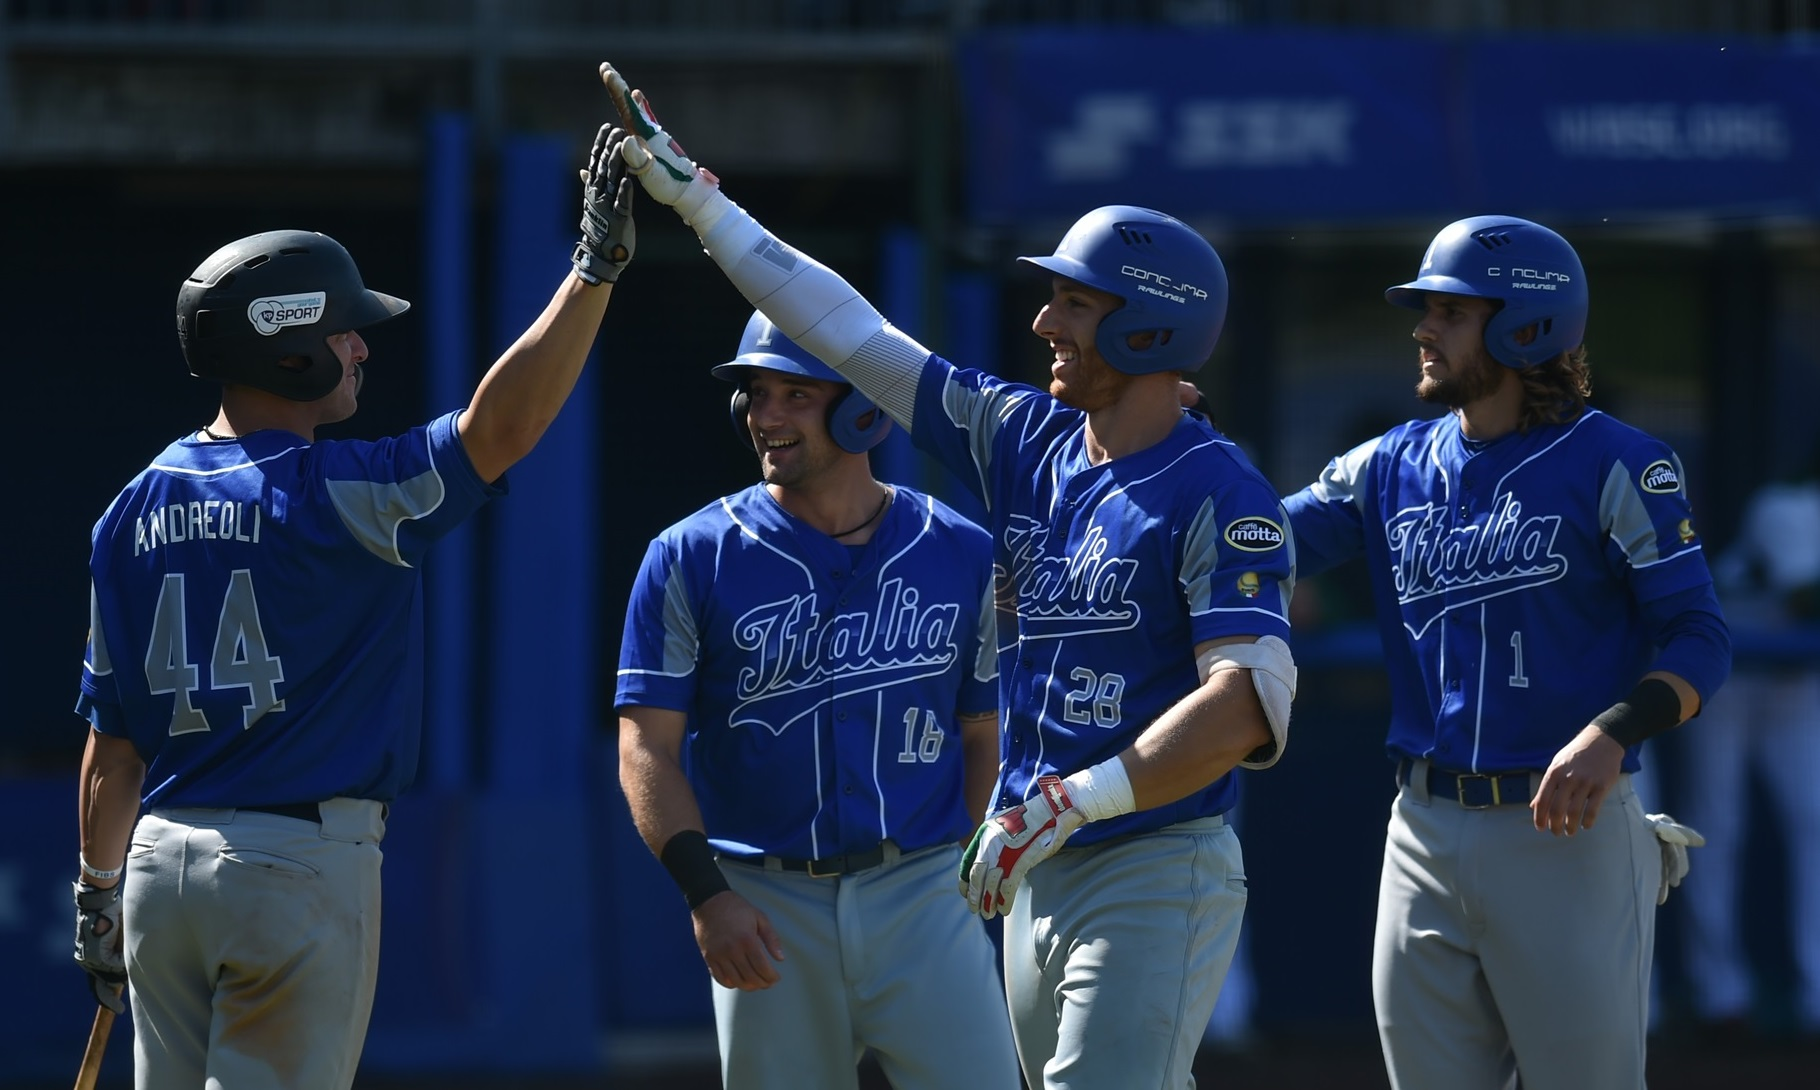 Italy celebrating after Celli's home run